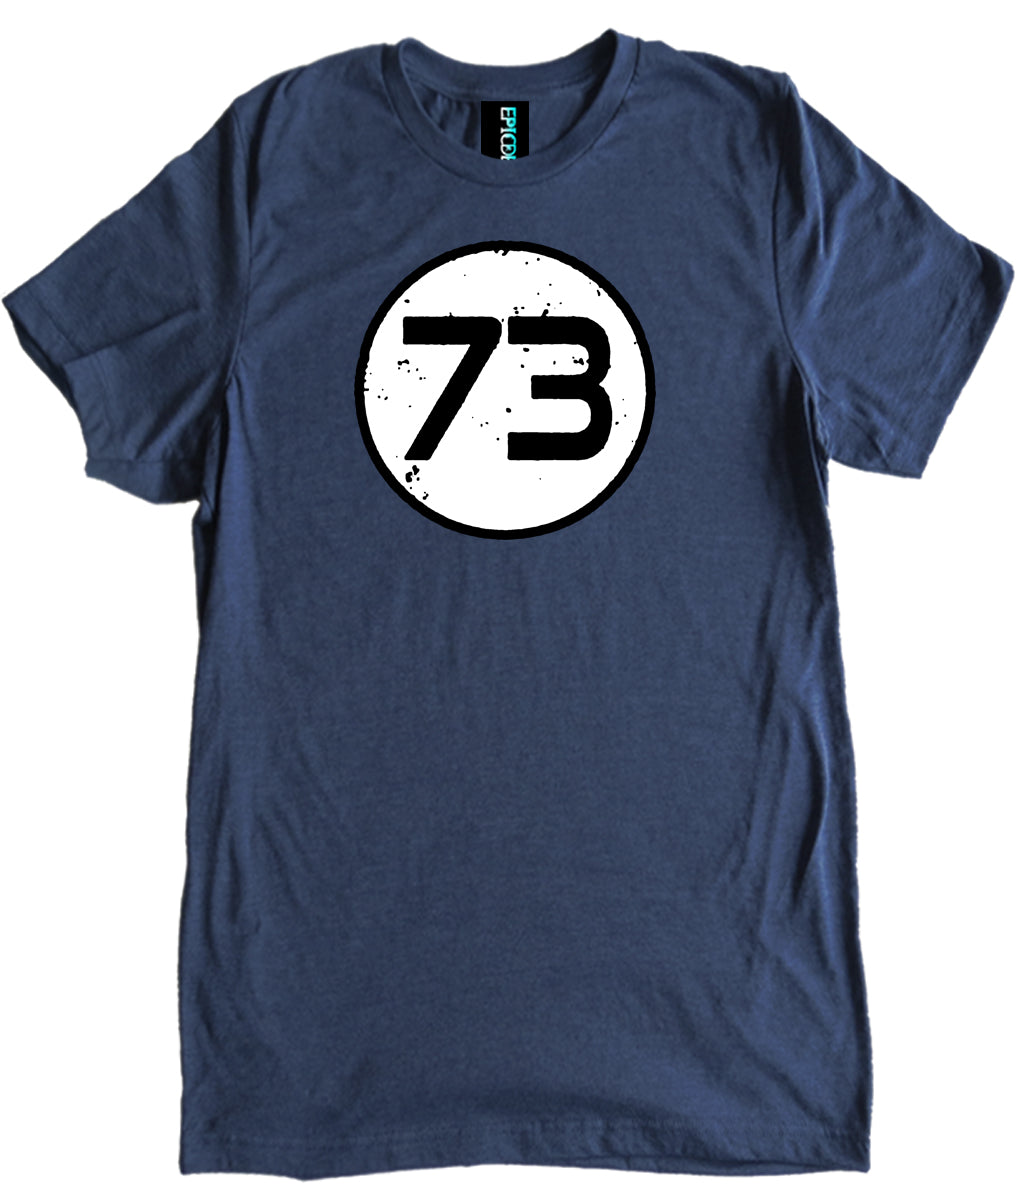 Big Bang Theory 73 Premium Shirt by Epicdelusion